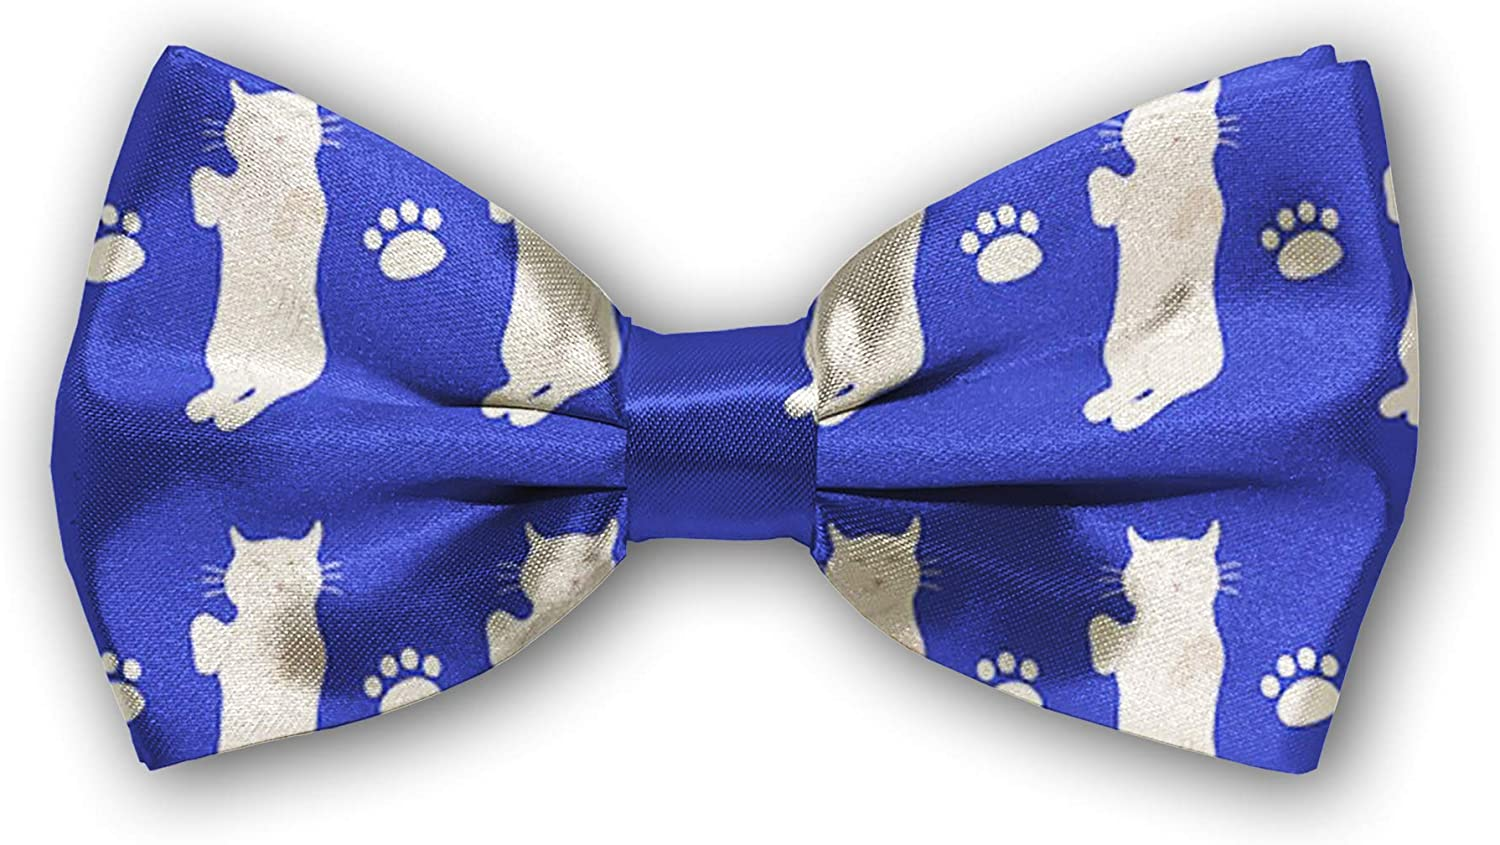 Bow Tie Tuxedo Butterfly Cotton Easy-to-use for Boys Bowtie Adjustable Mens High order